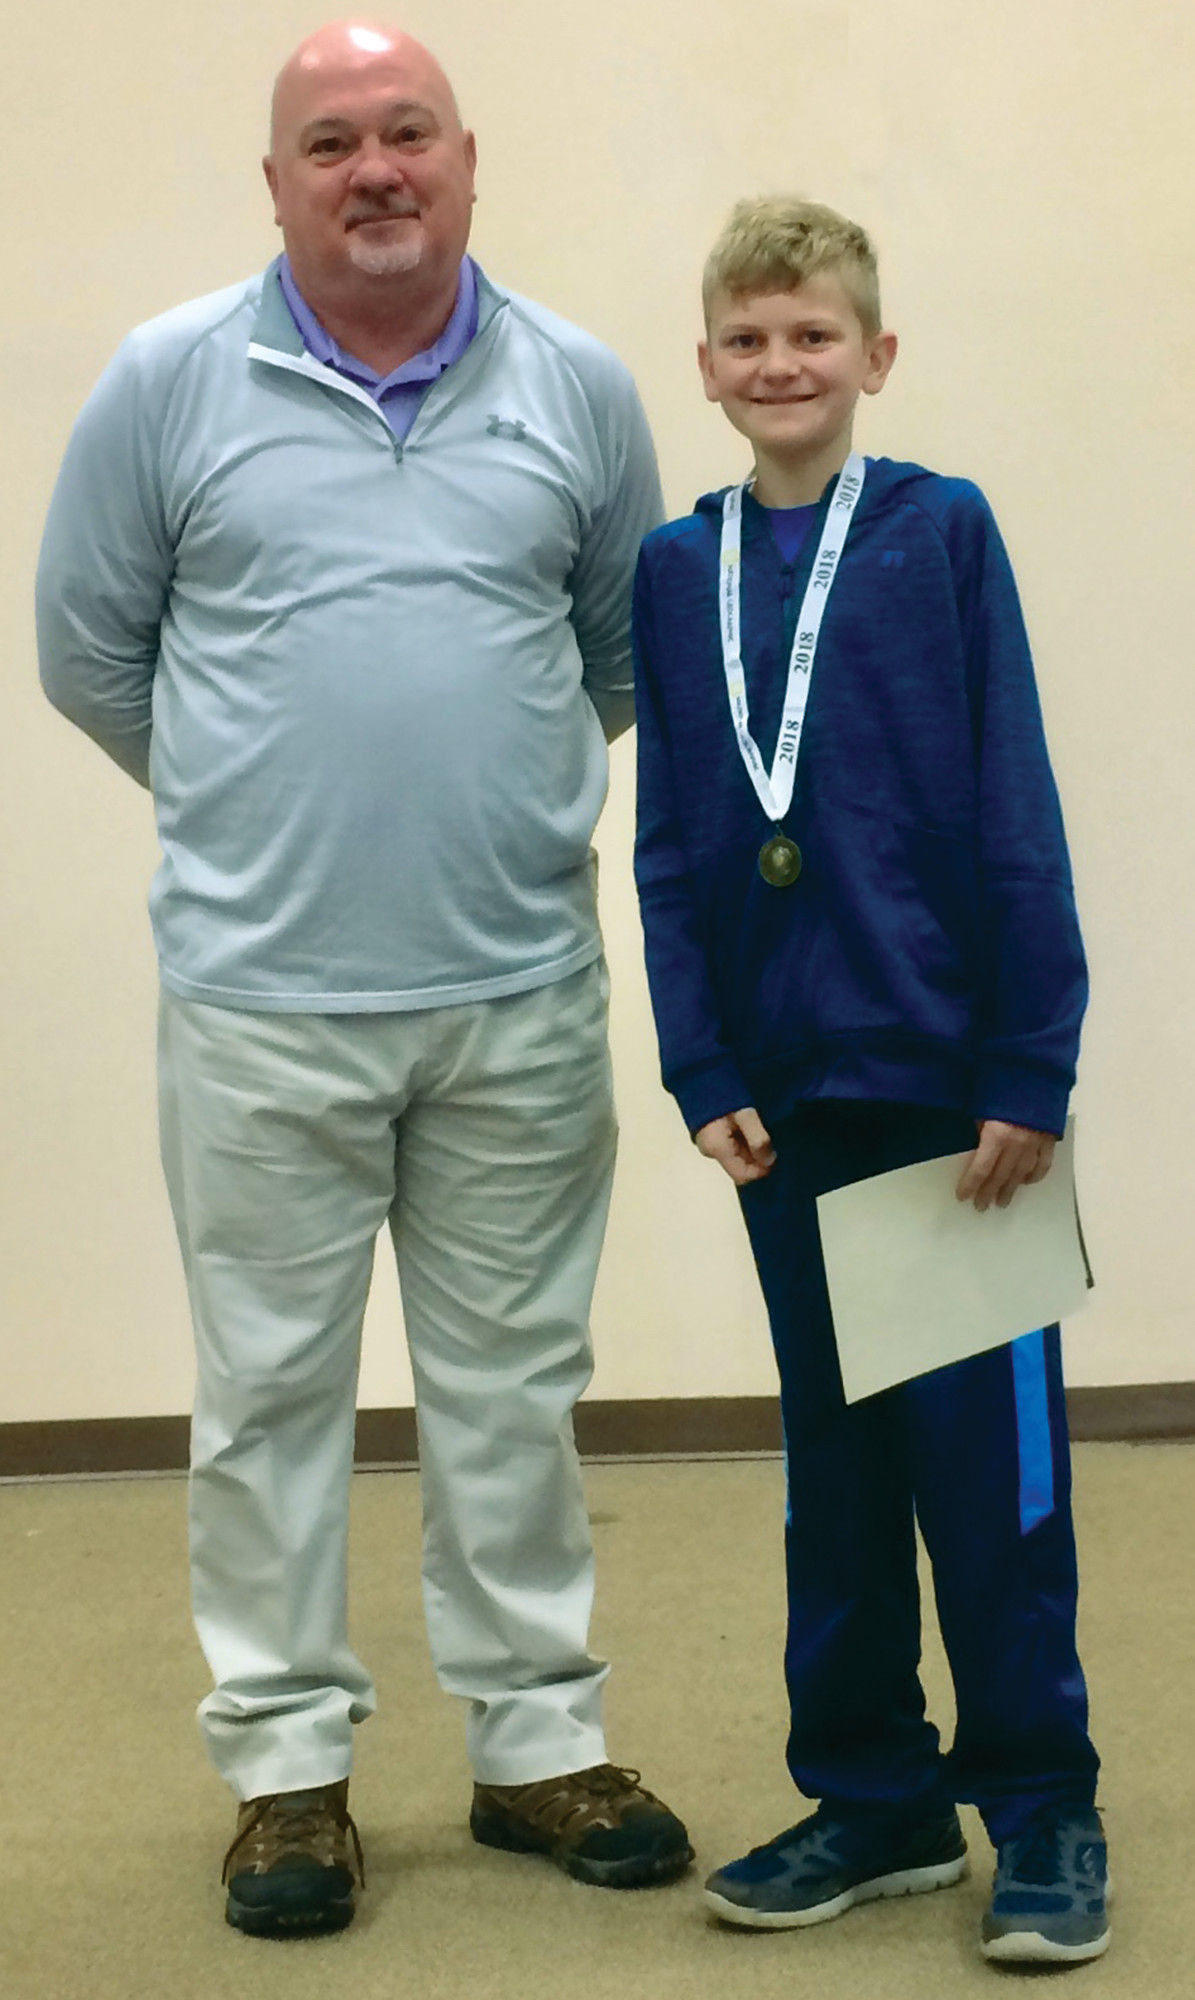 PHOTO PROVIDEDA. Reisenauer won the National Geographic Bee at St. Anne & St. Jude Catholic School. In April, he will compete for the state title against students from across South Carolina. Dan Spivey, left, is Reisenauer's social studies and geography teacher.